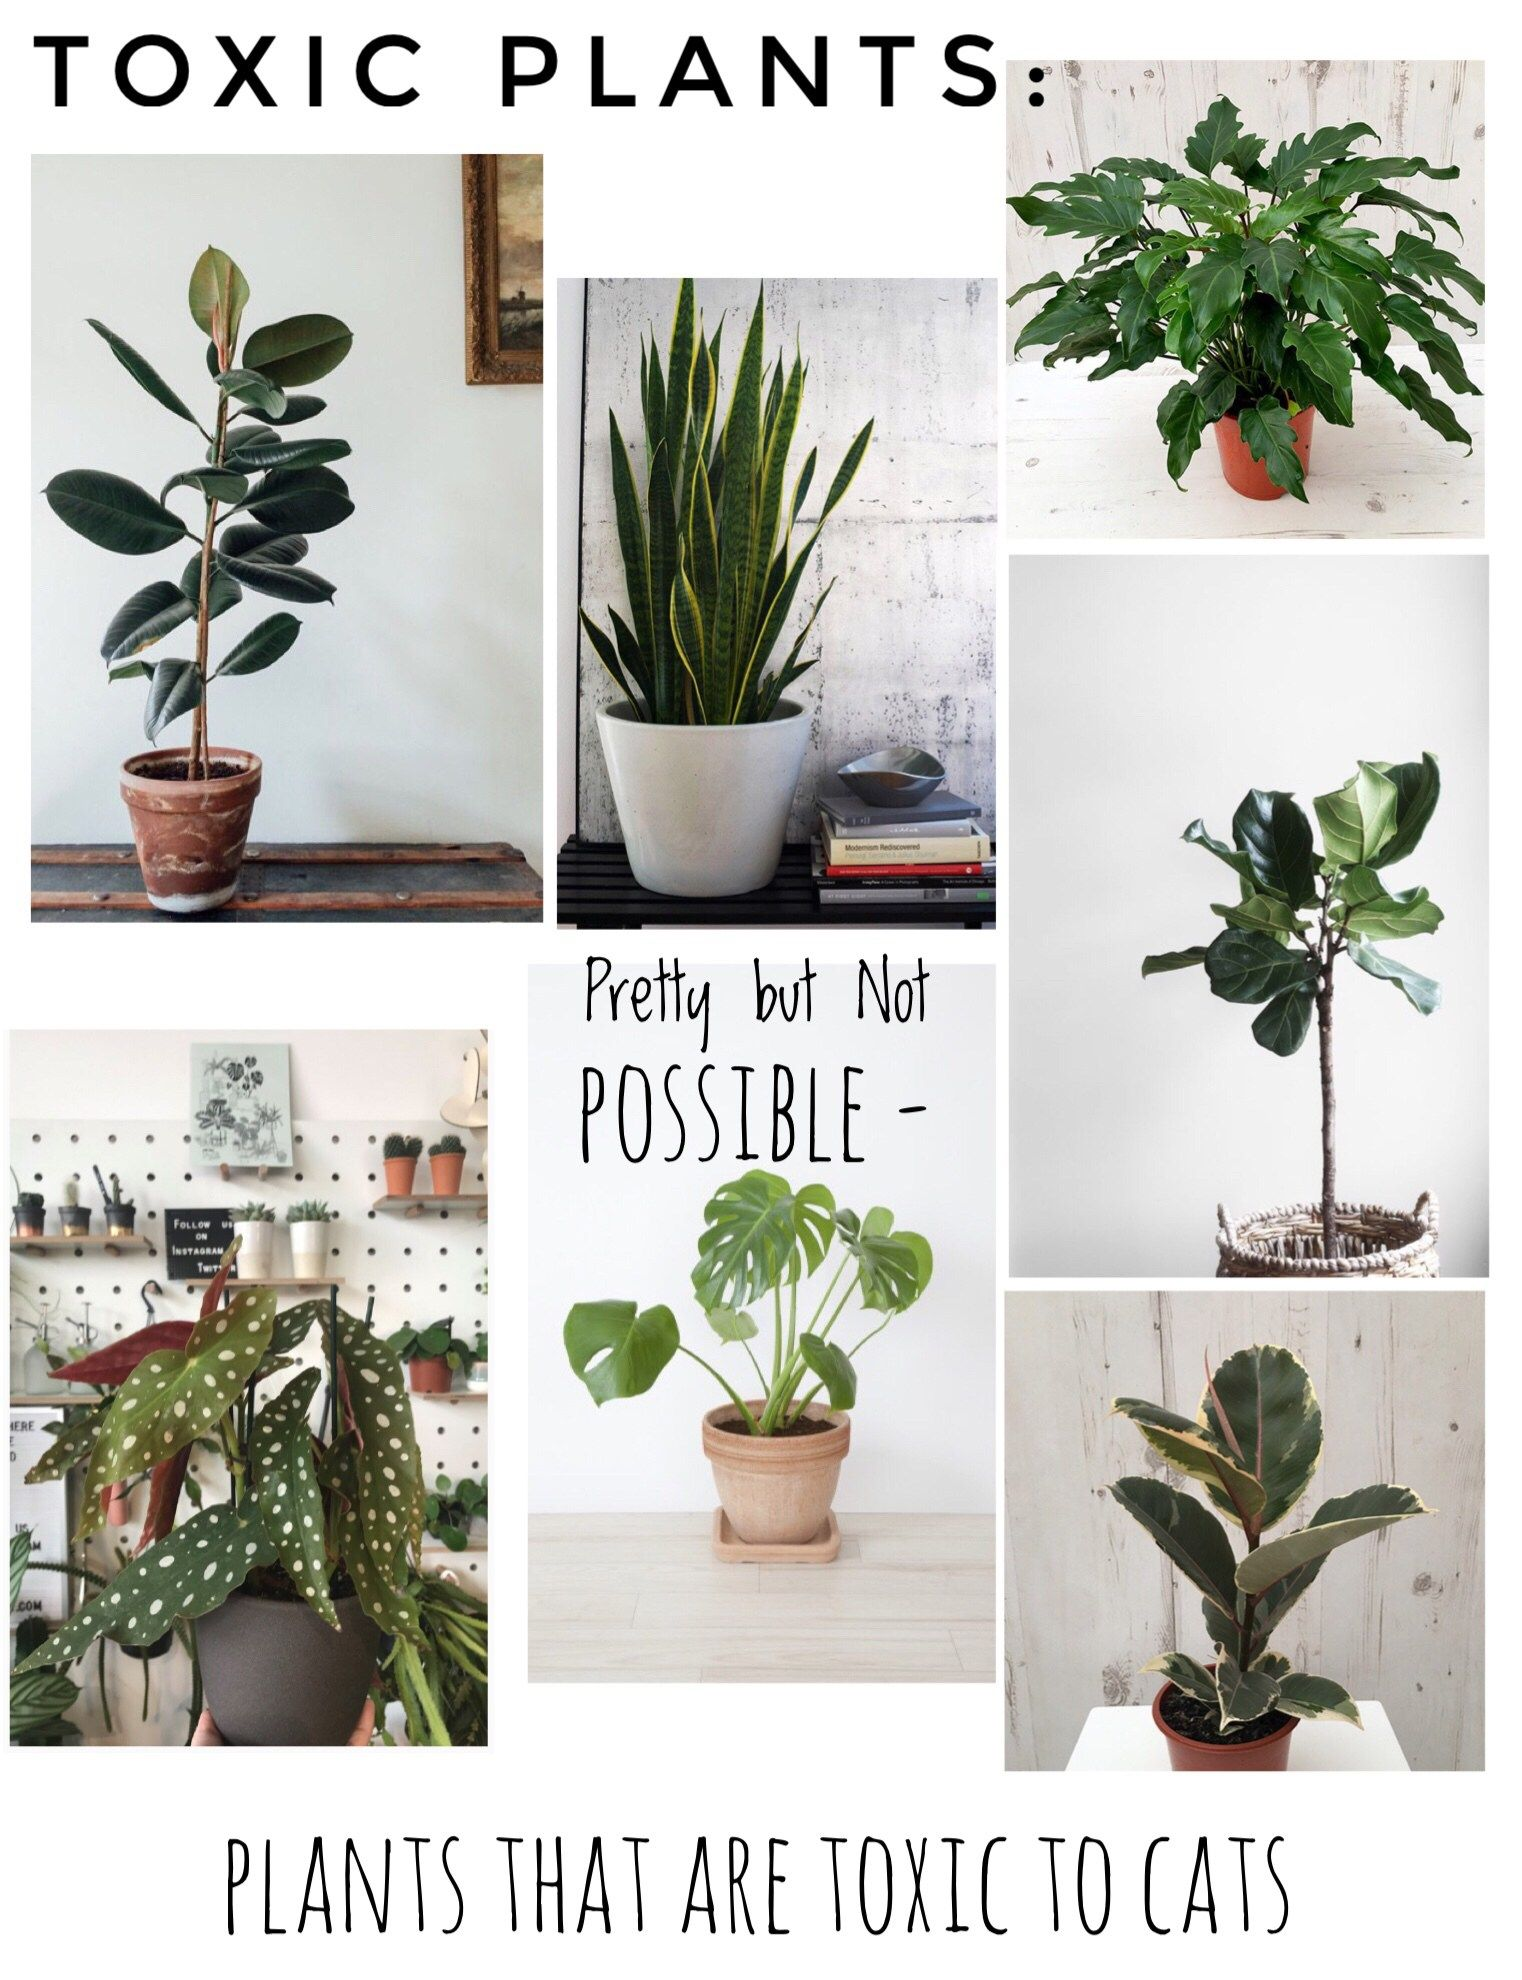 Toxic Plants To Pets Cats Safe House Plants Cat Safe House Plants Houseplants Safe For Cats